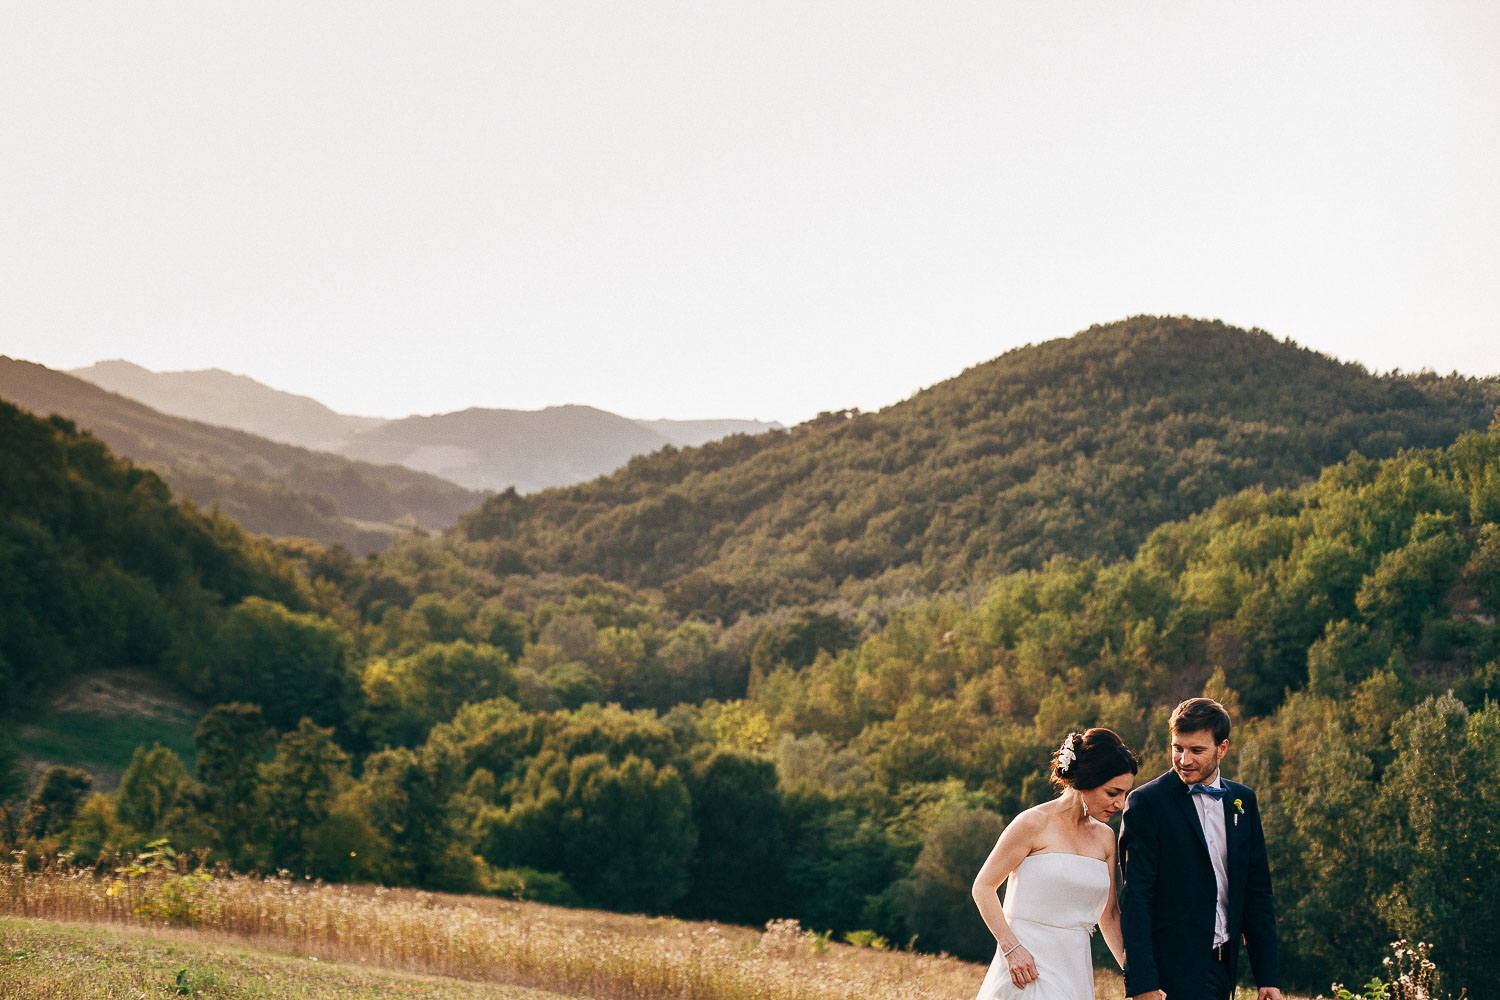 bride-groom-walking-hills.jpg